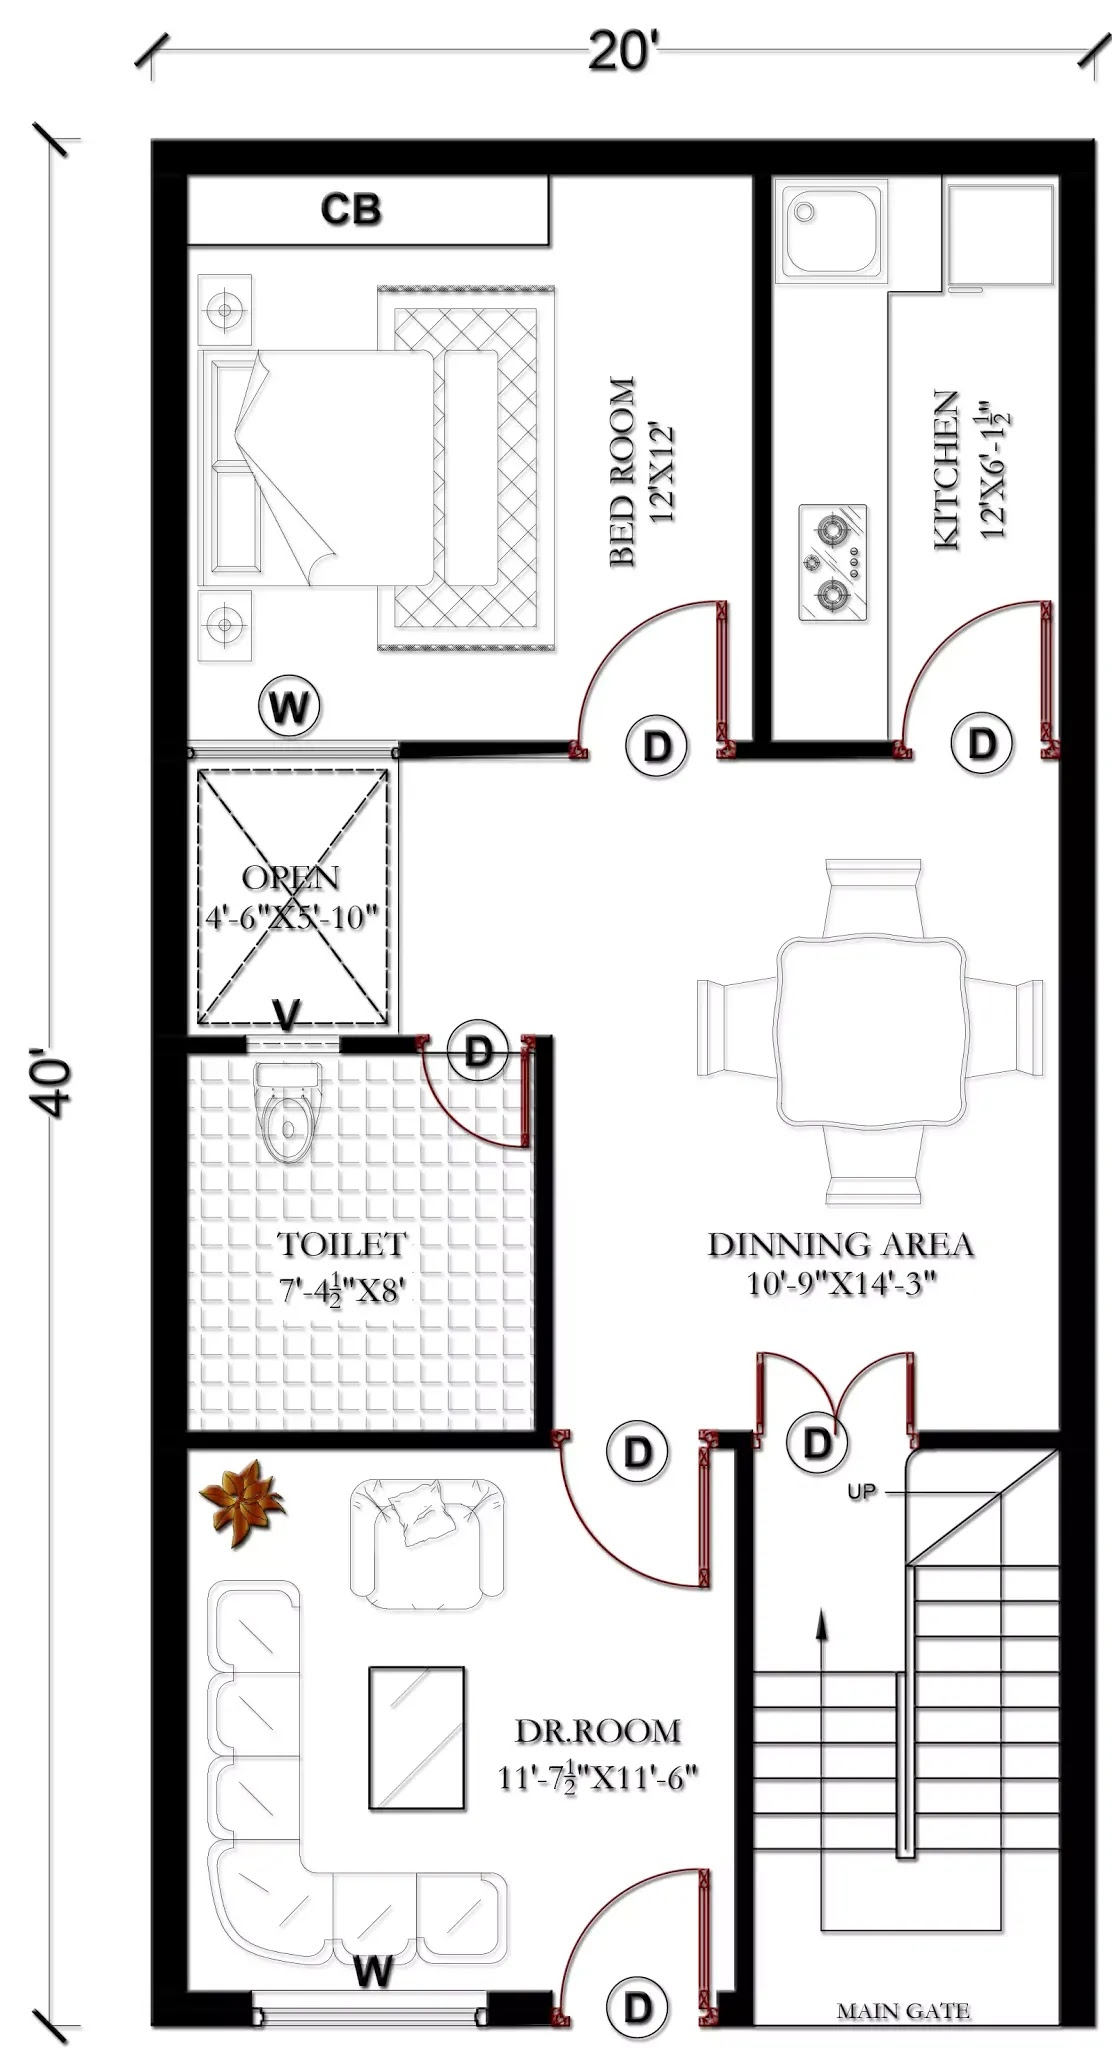 Floor Plan For 20x40 Ft 2bhk Without Car Parking 800 Sqft Sumit Kush